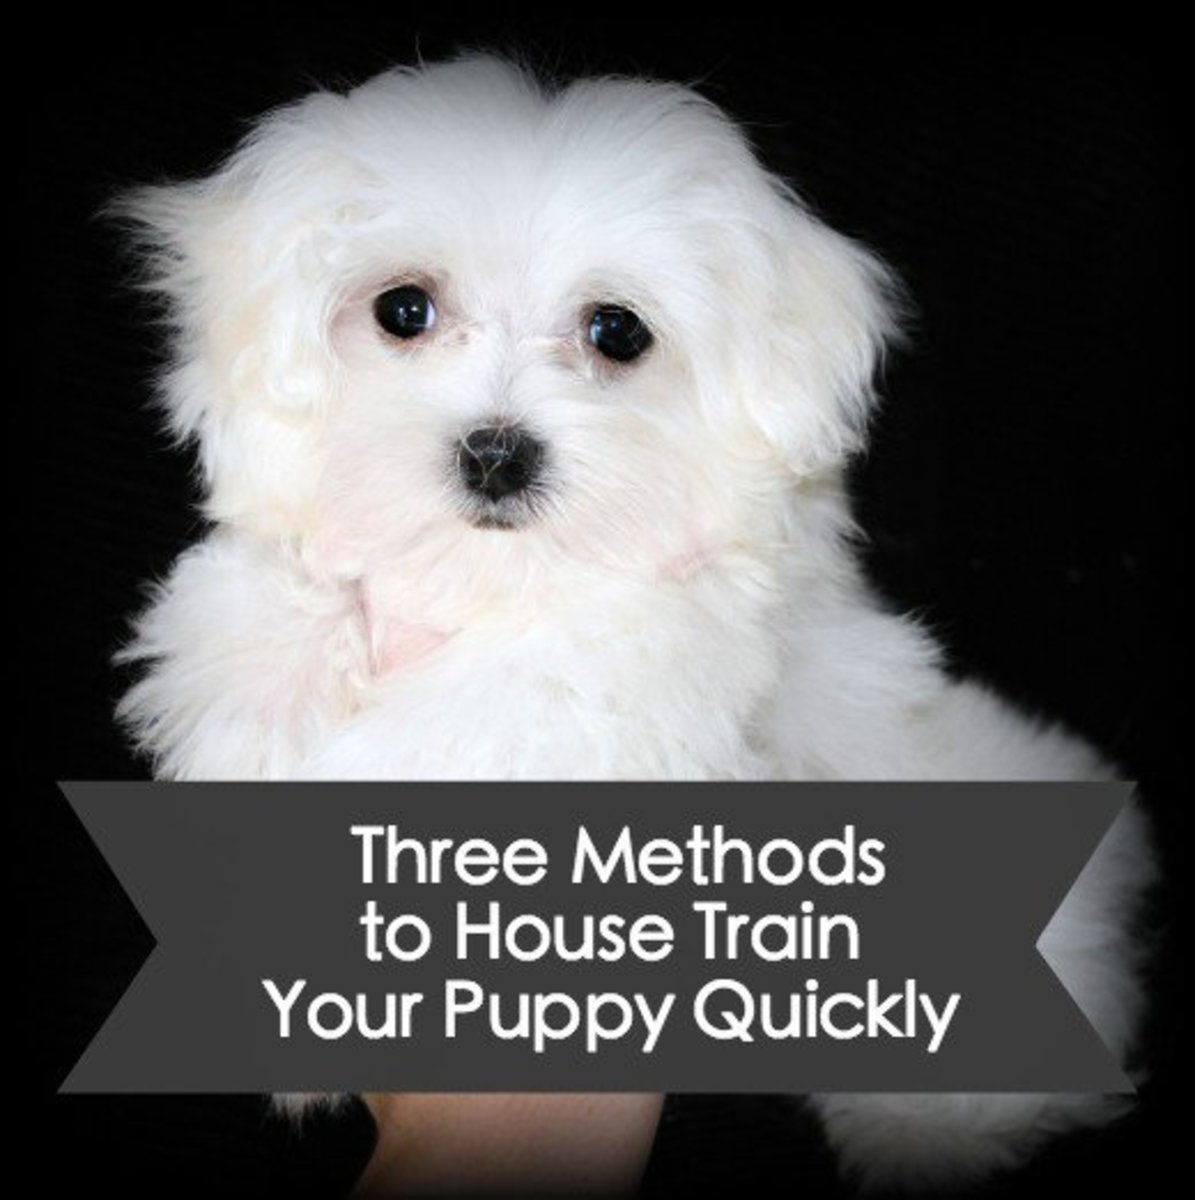 How to House Train a Puppy Fast